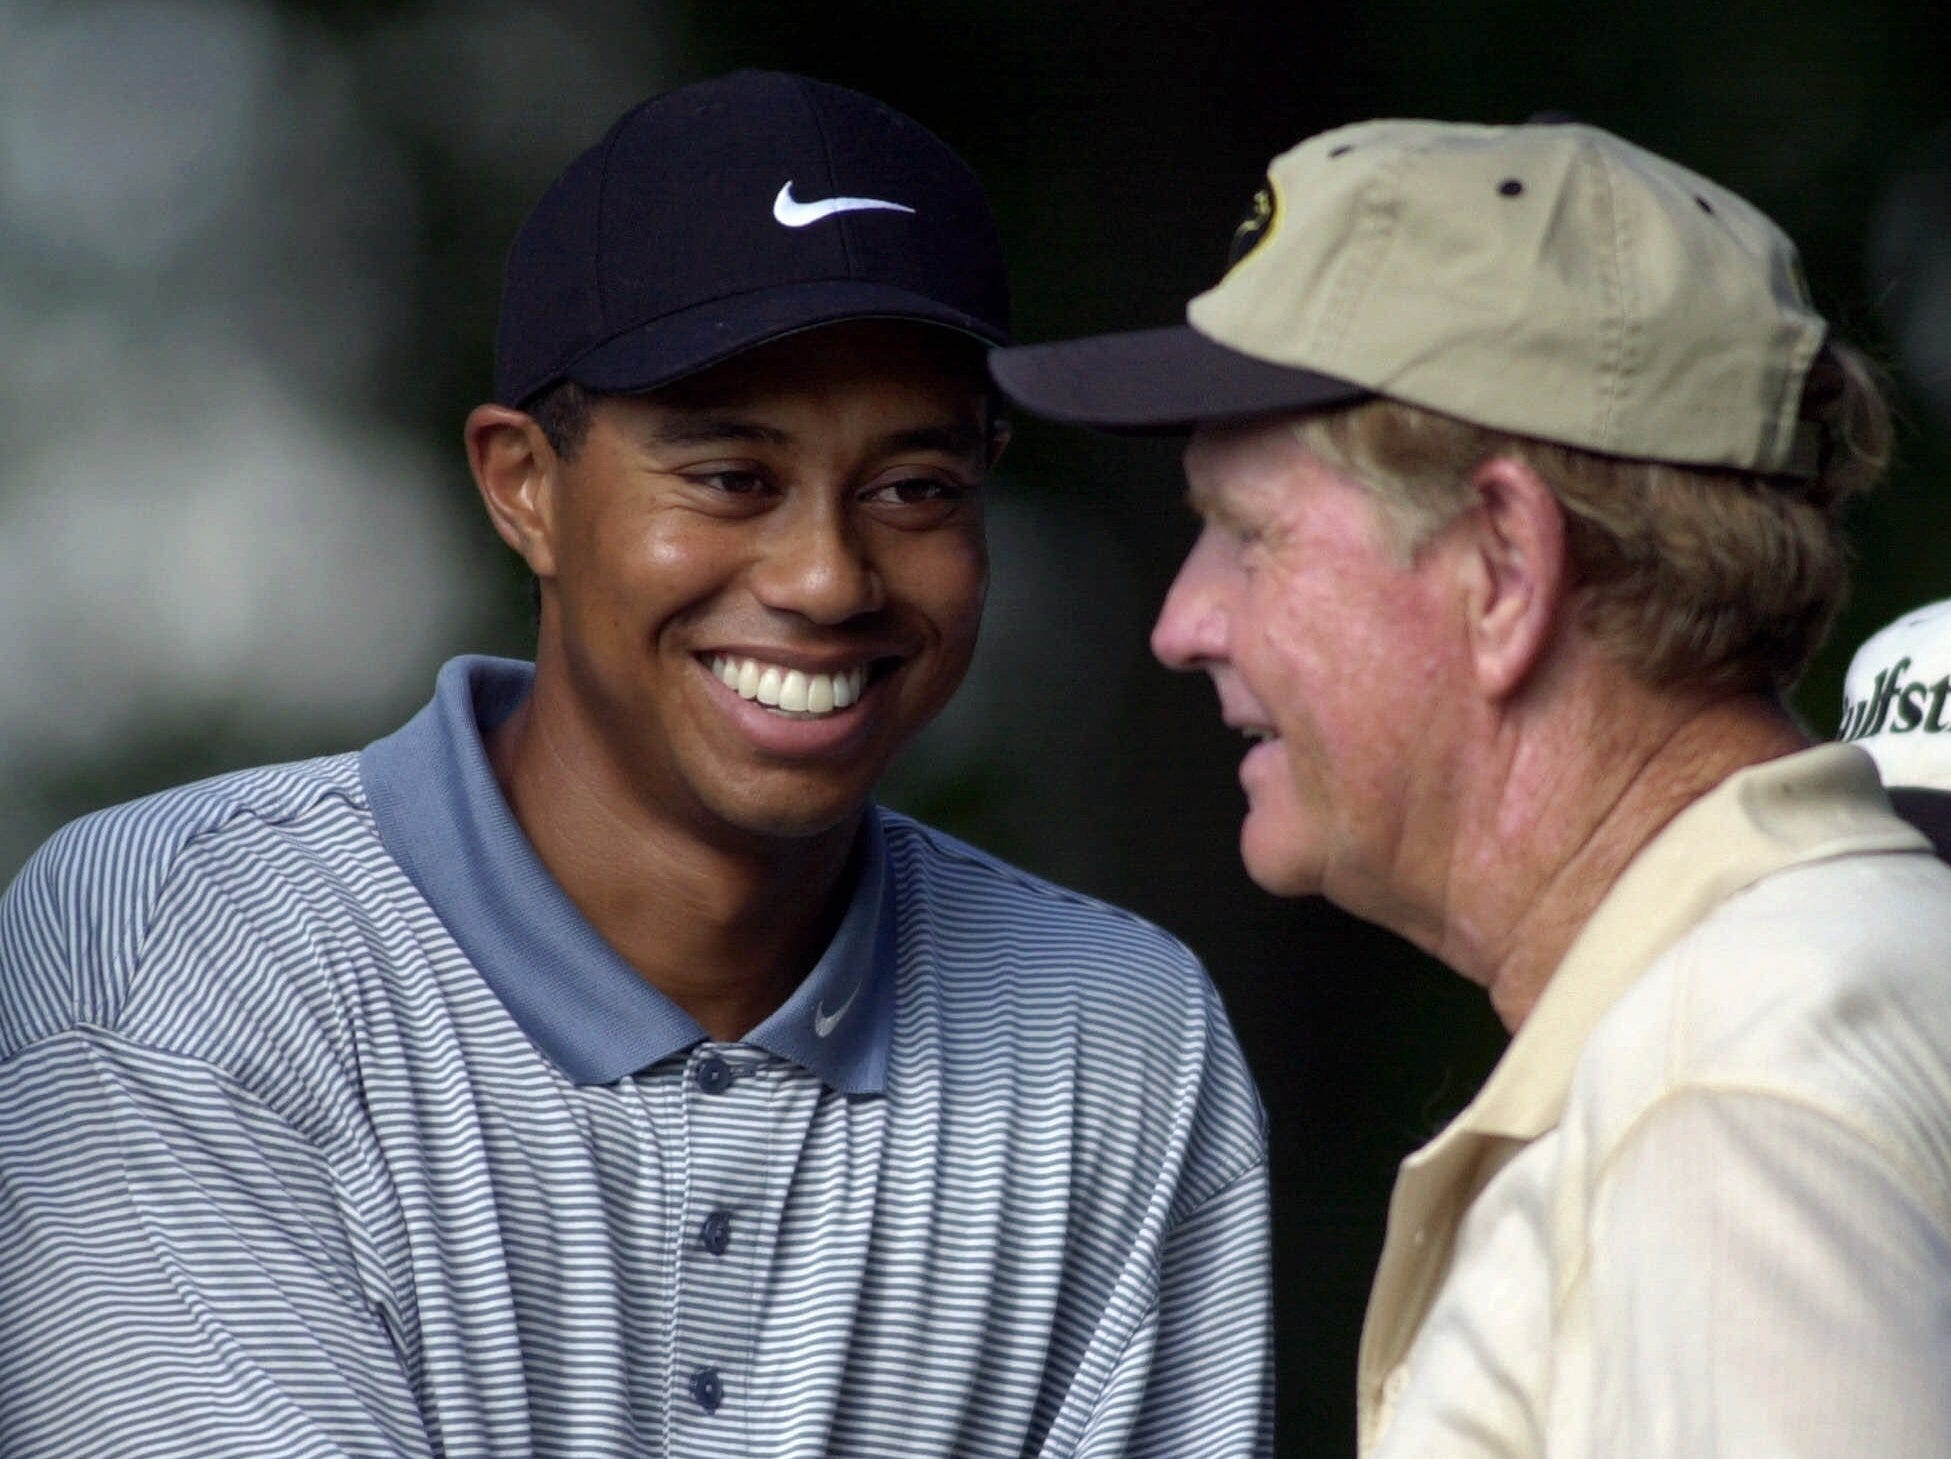 Tiger Woods, left, and Jack Nicklaus share a moment on the 12th tee during the second round of the PGA Championship, Friday, Aug. 18, 2000, at the Valhalla Golf Club in Louisville, Ky.